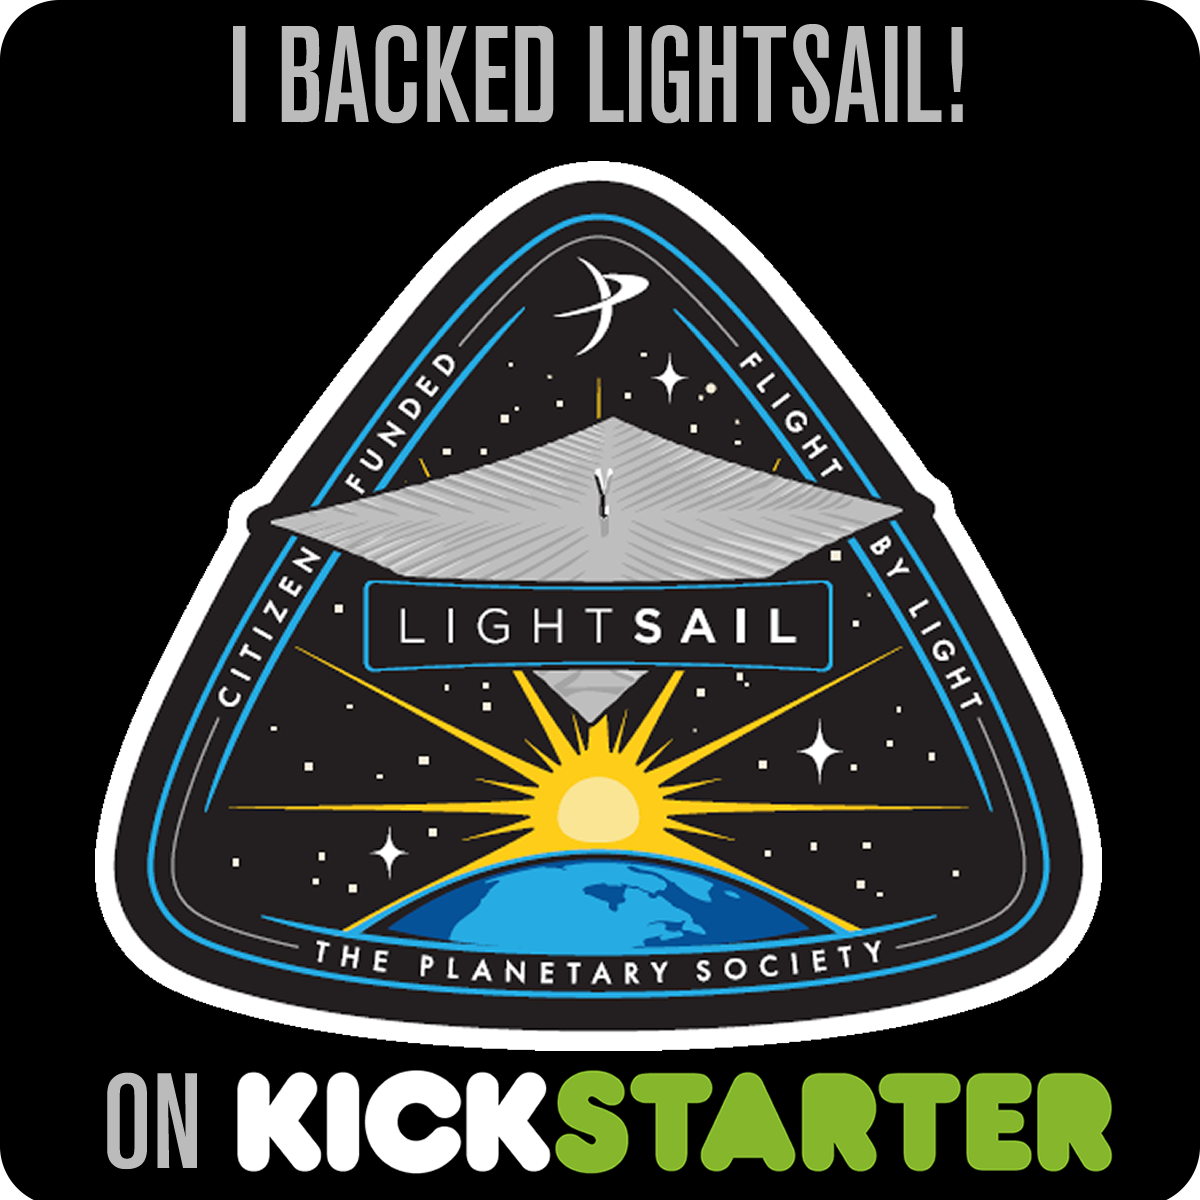 I Backed Lightsail